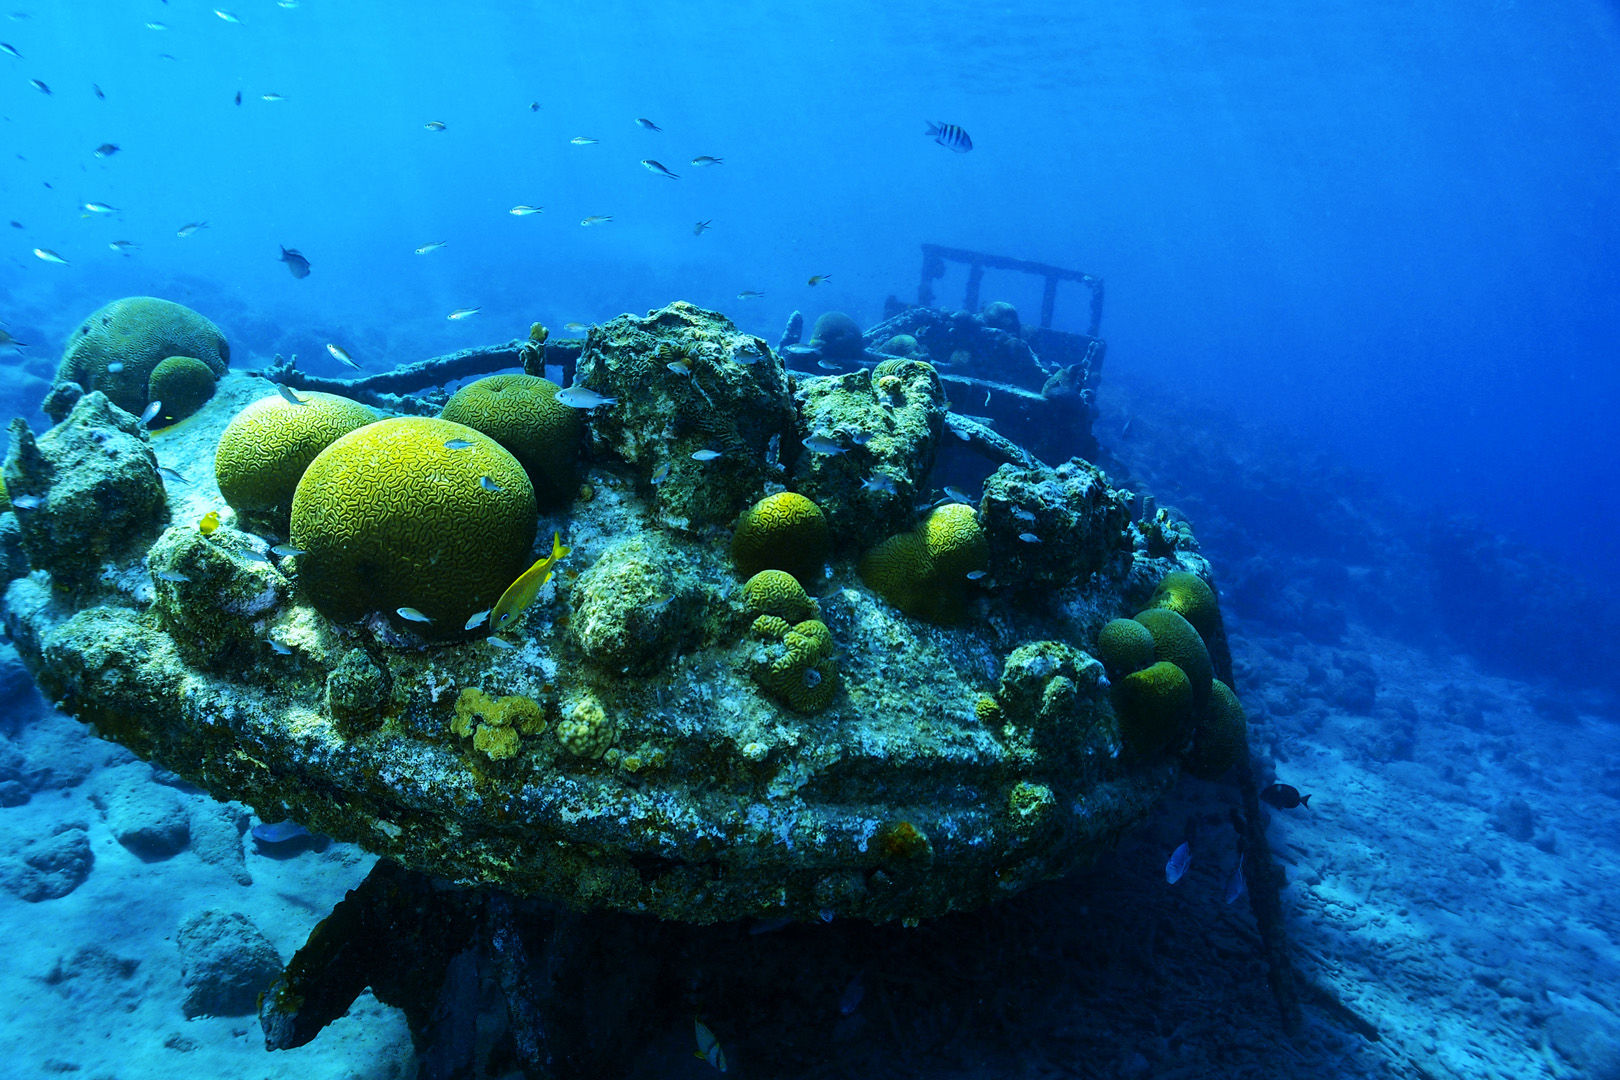 Tugboat wreck lying in the sunlit shallows in Curacao